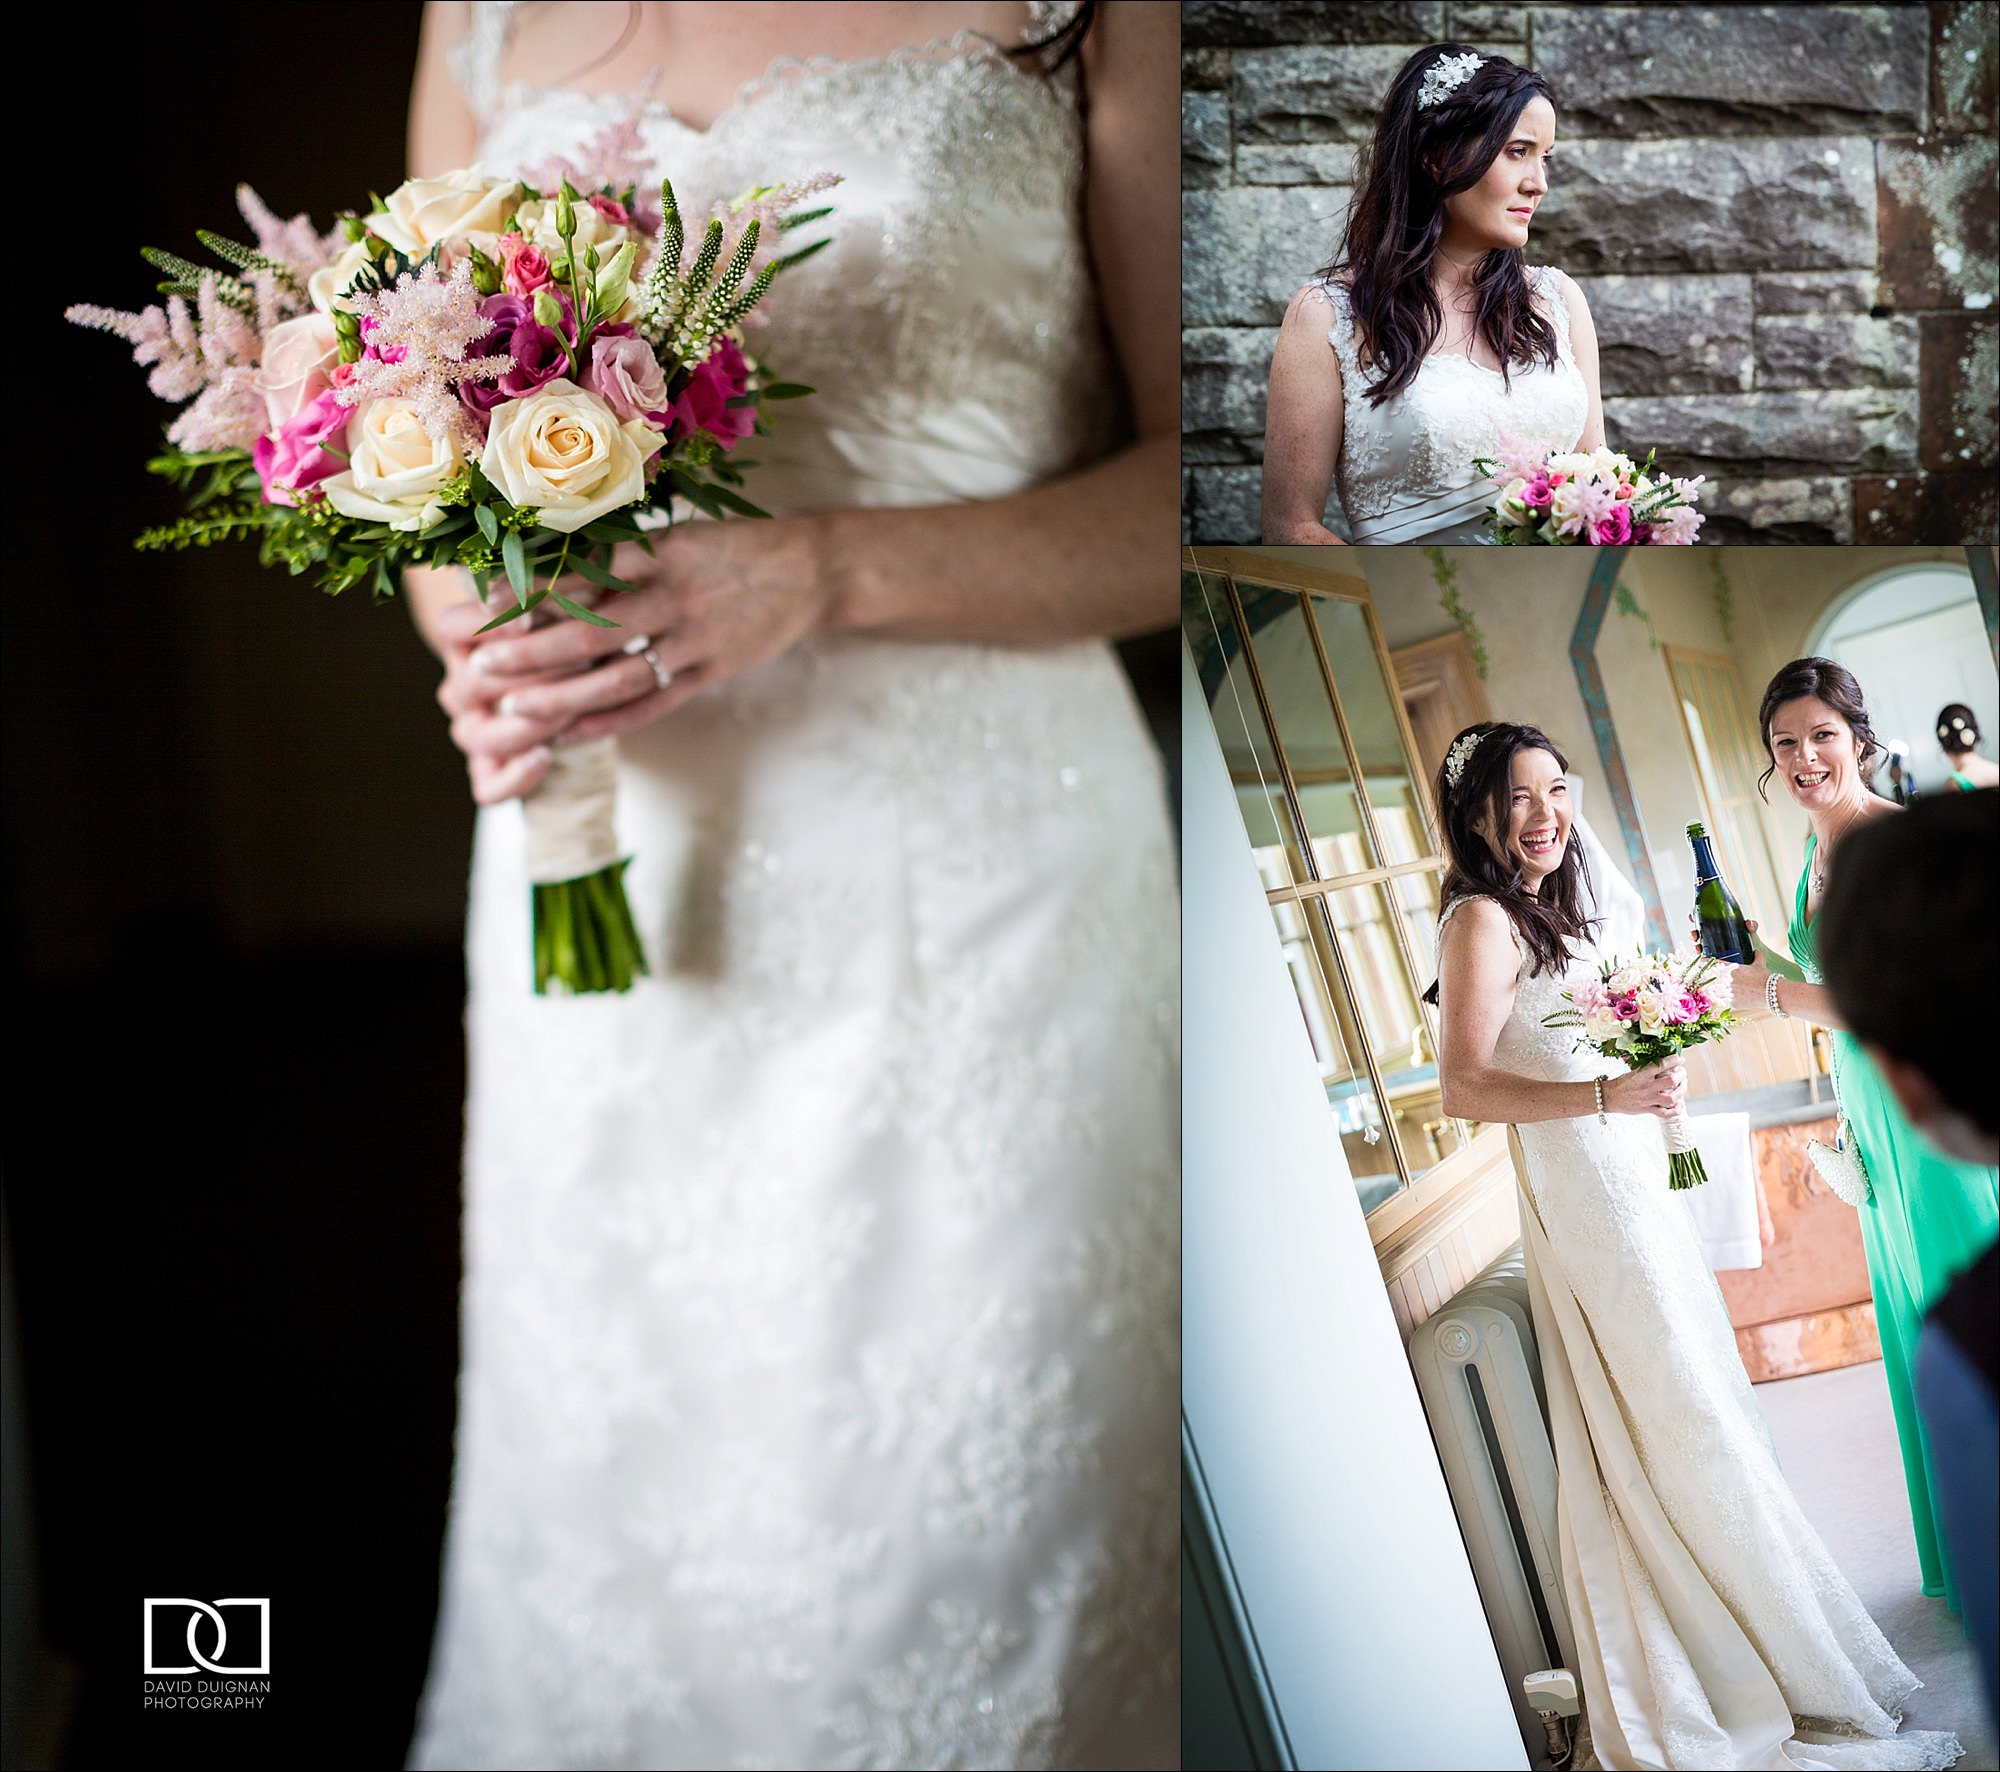 dublin wedding photographer david duignan photography castle leslie weddings Ireland 0010